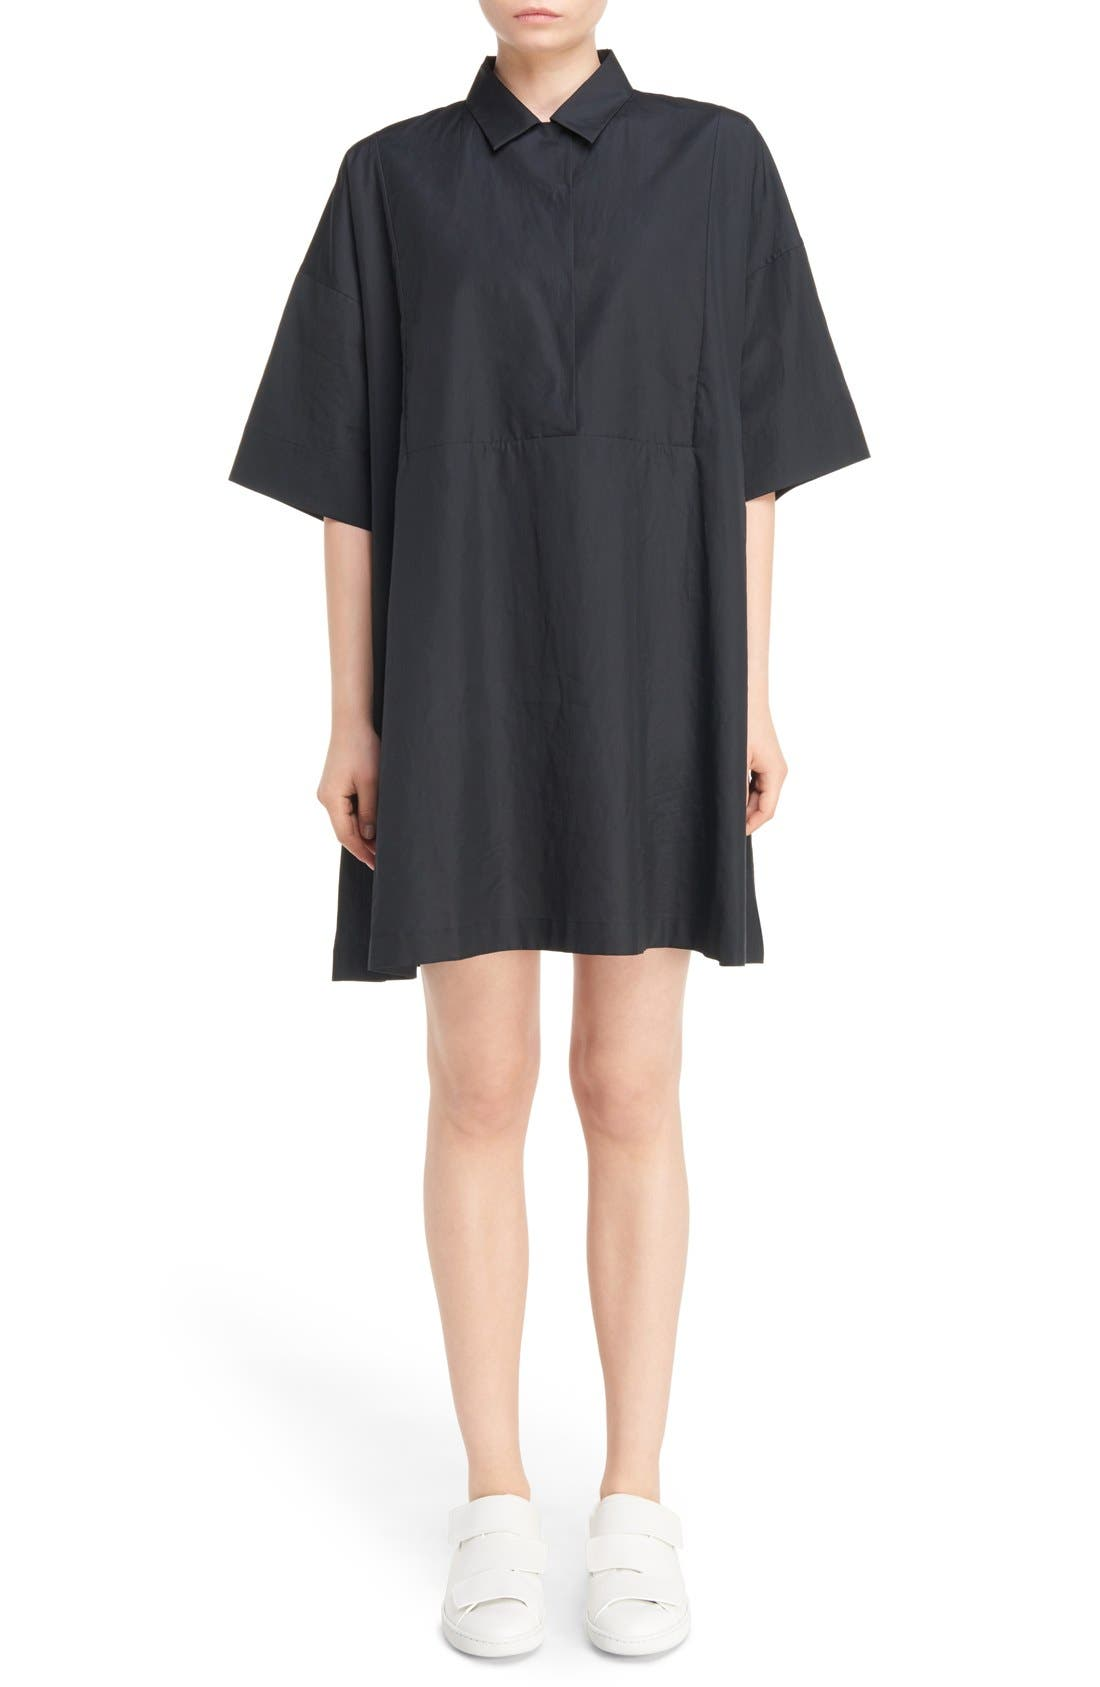 ACNE STUDIOS Sena Cotton Minidress